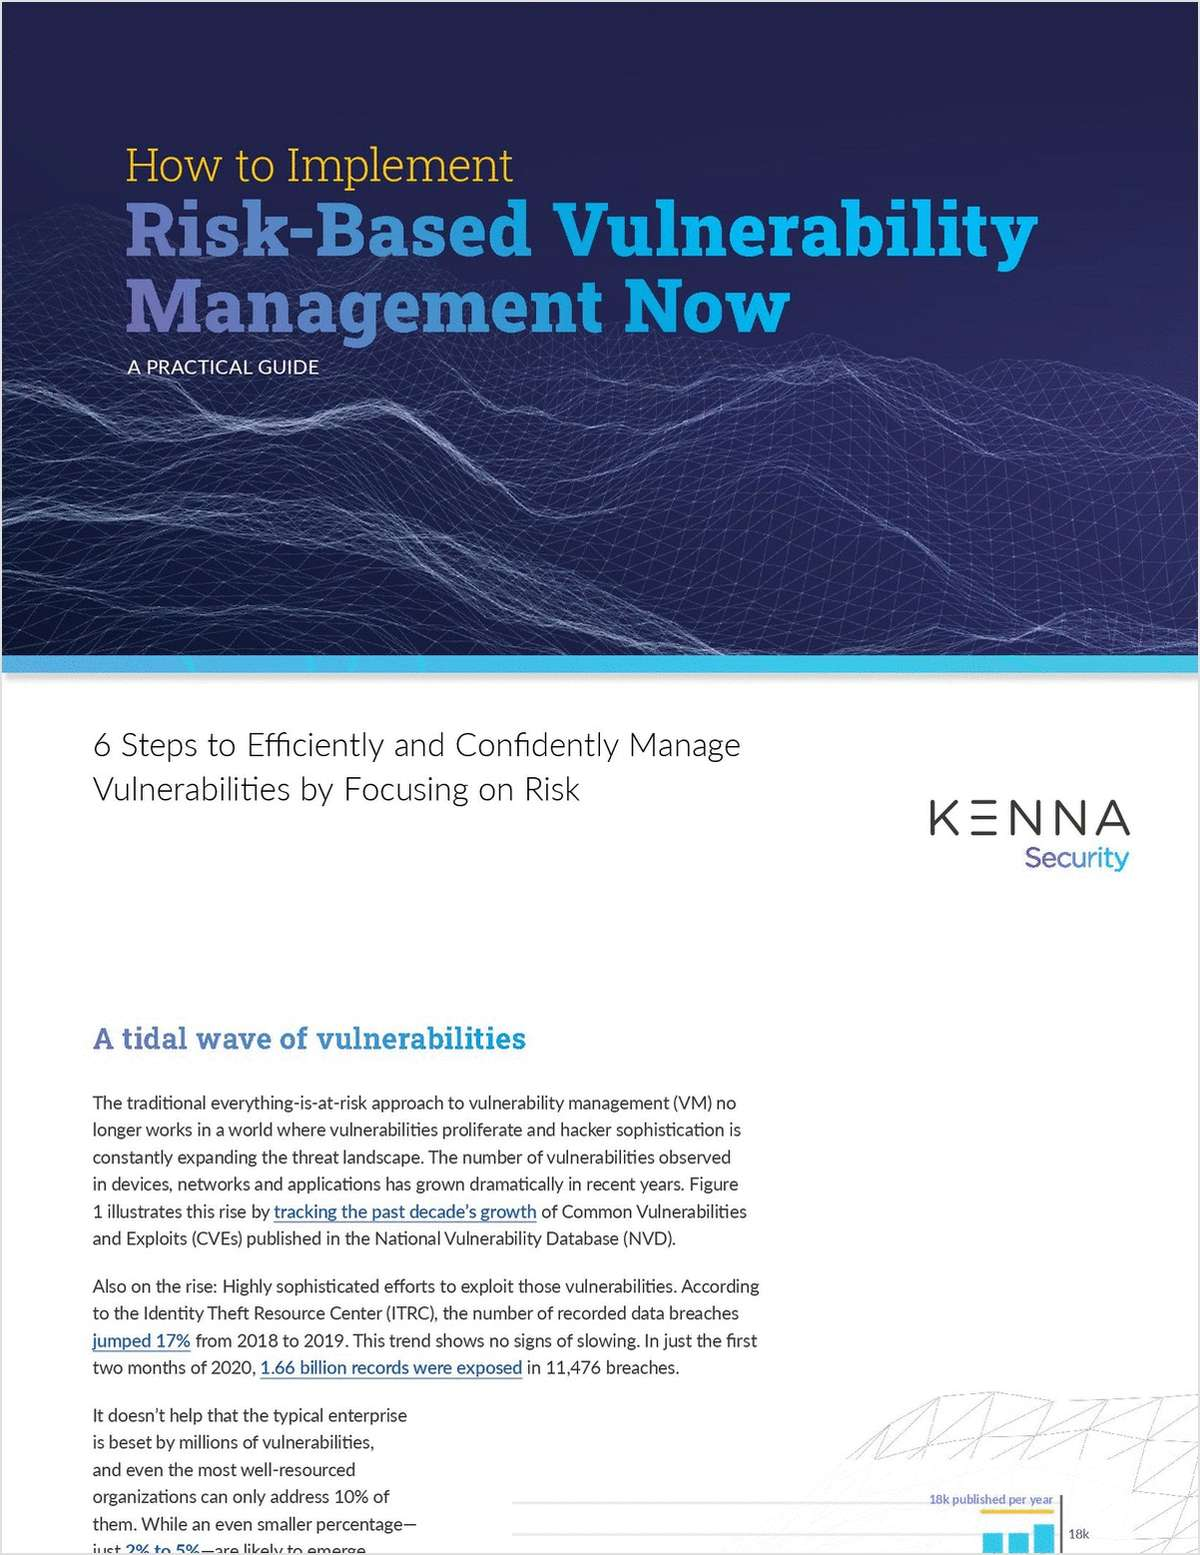 How to Implement a Risk-Based Vulnerability Management Approach